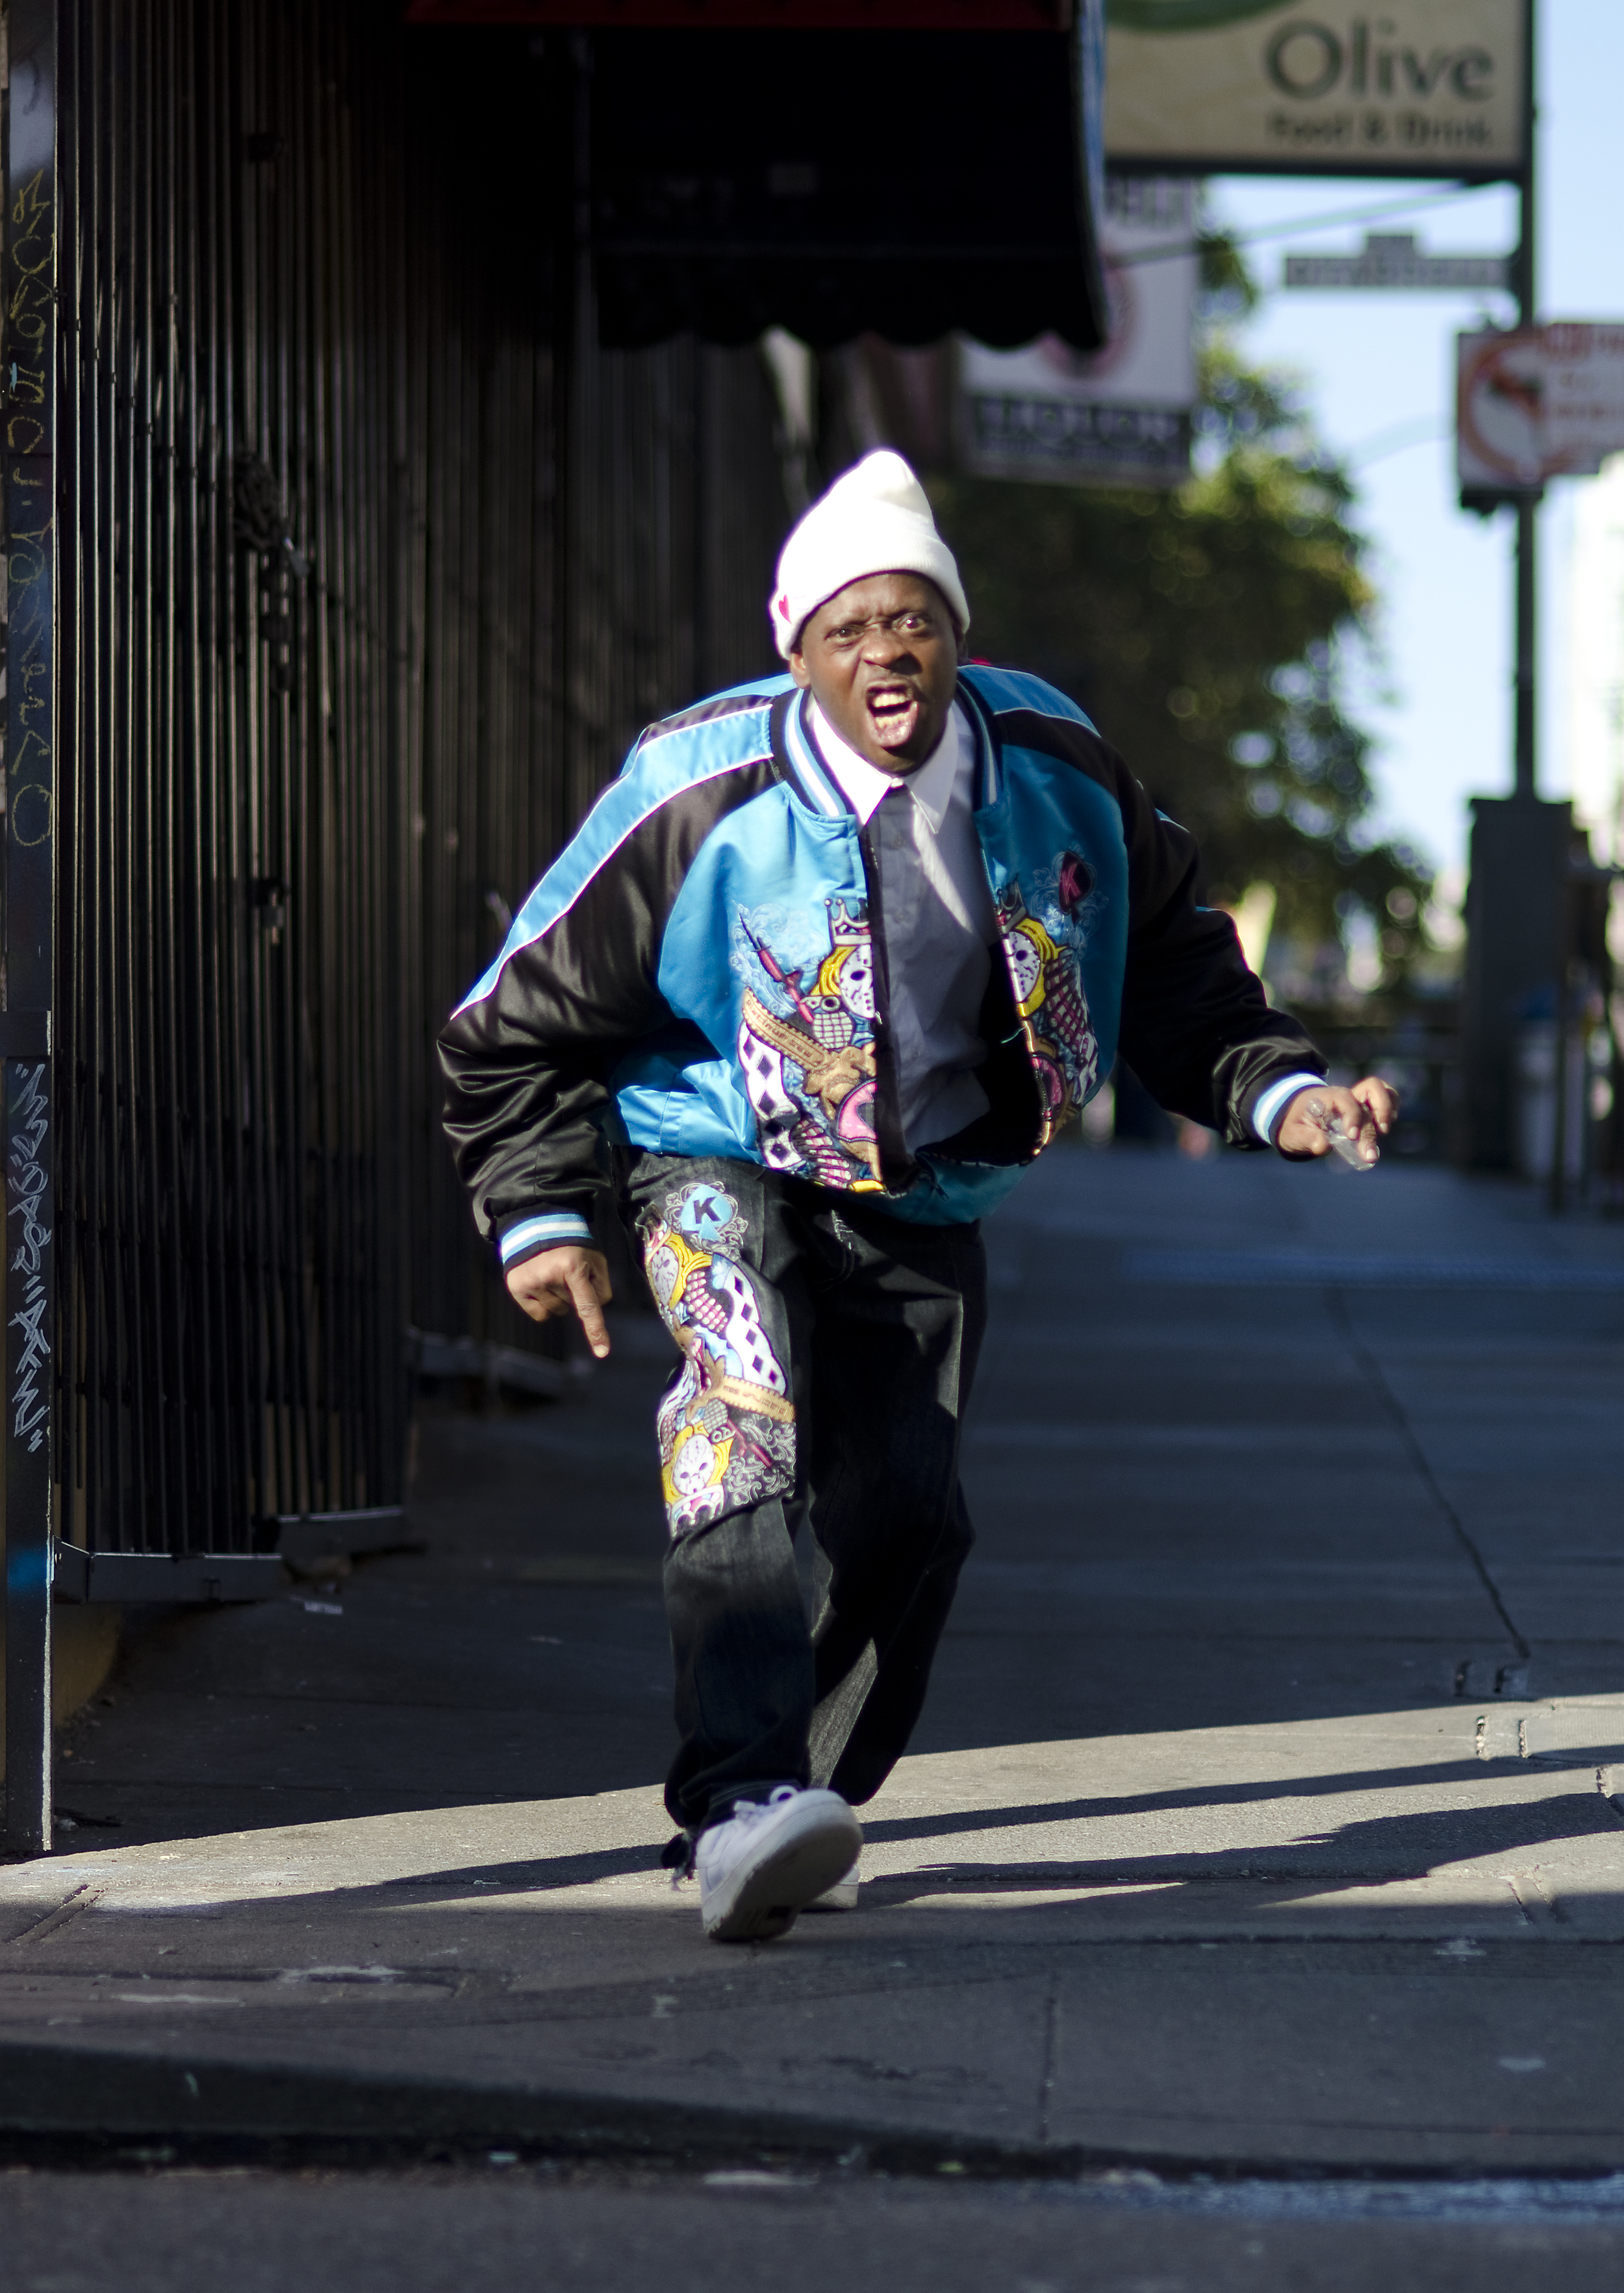 A stanger plays it up for the camera in San Francisco, Calif. Tuesday, Jan. 1, 2013.